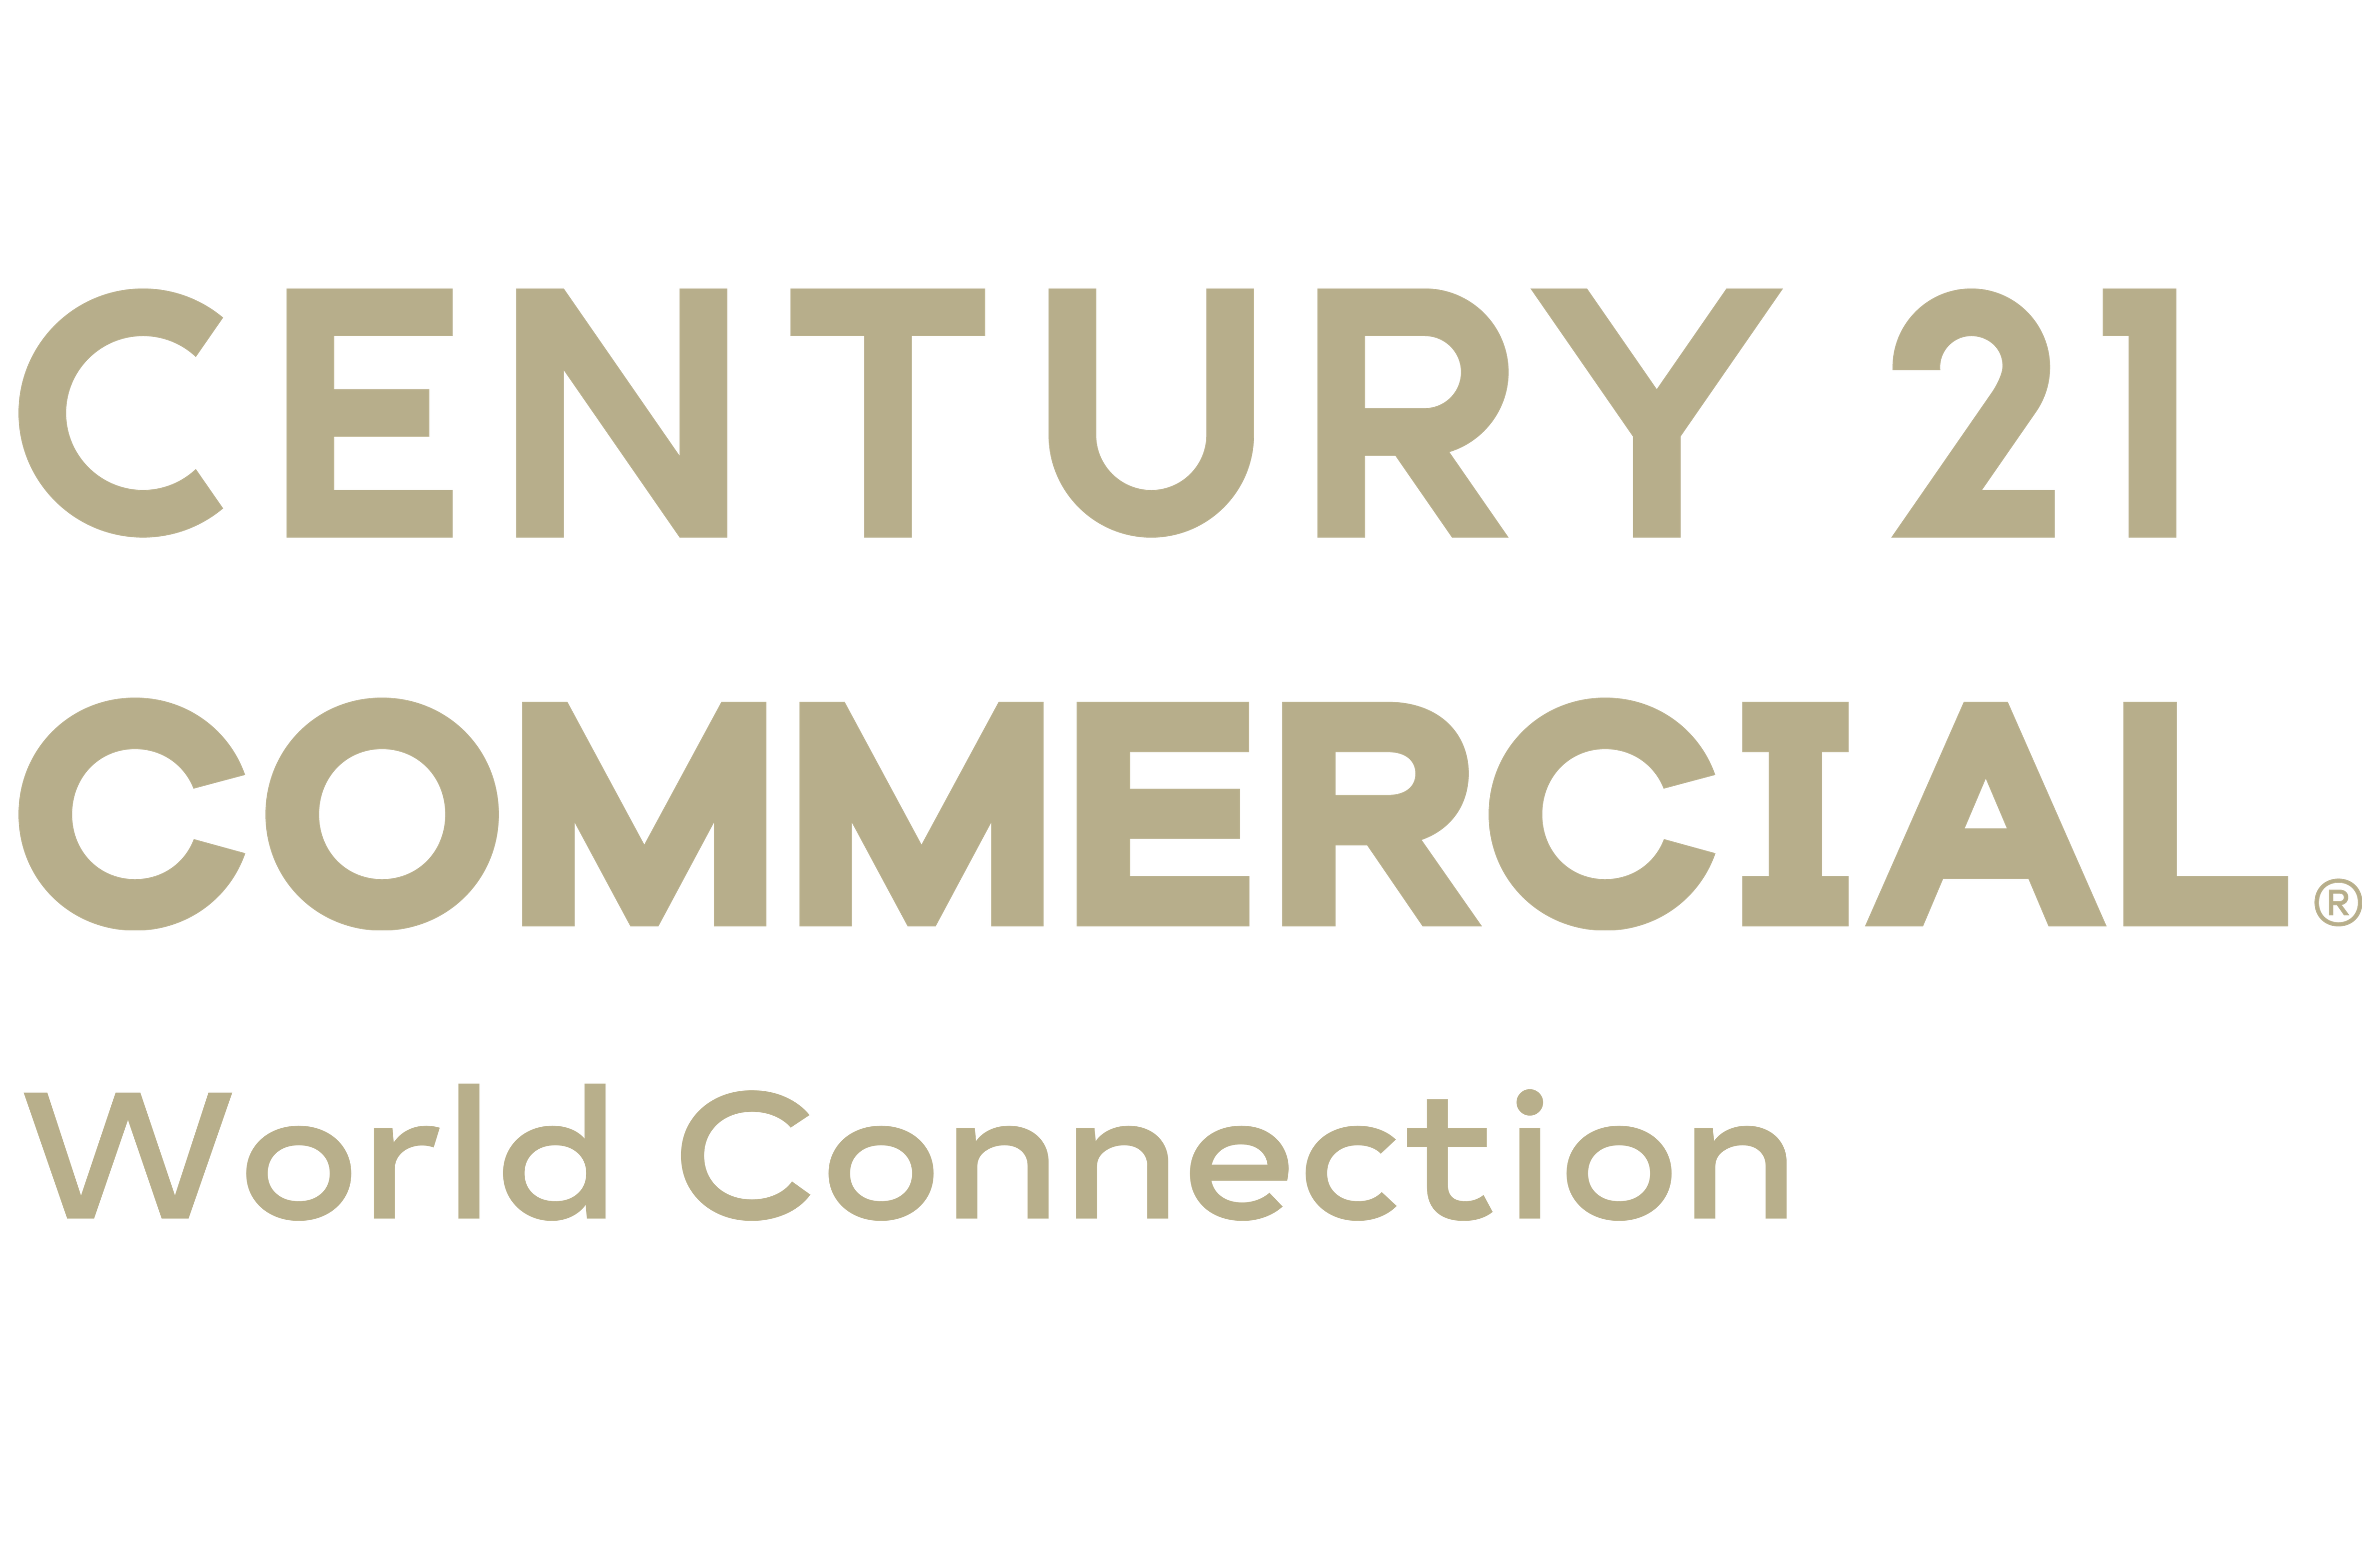 Andres Ocampo of CENTURY 21 World Connection logo